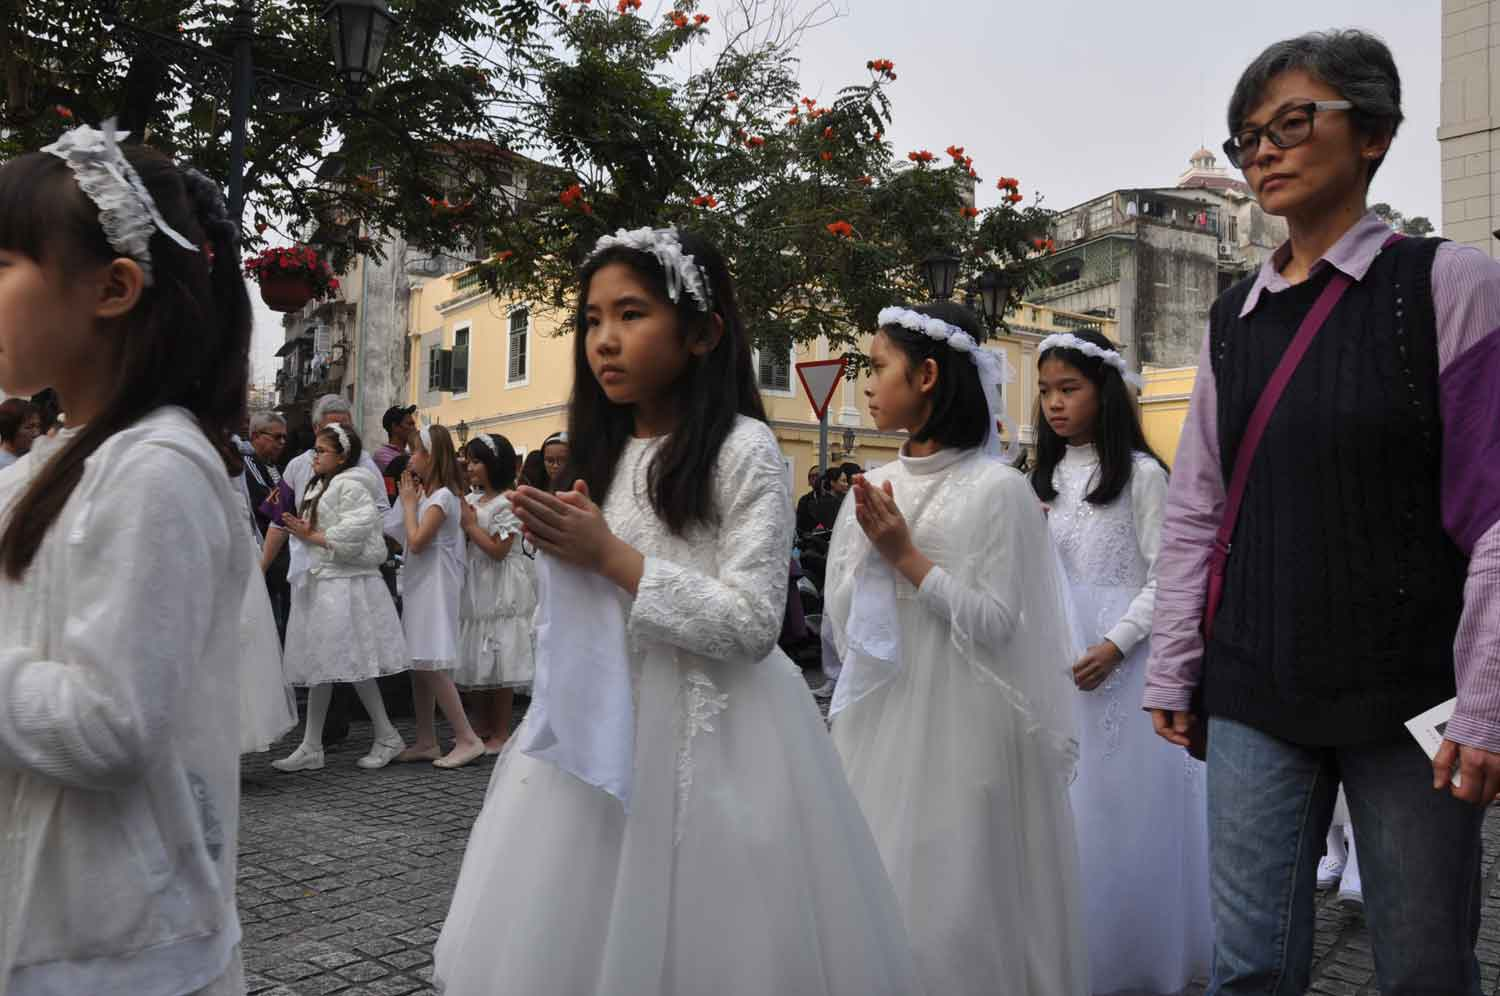 Passion of Our Lord Procession young girls in white outside of Cathedral